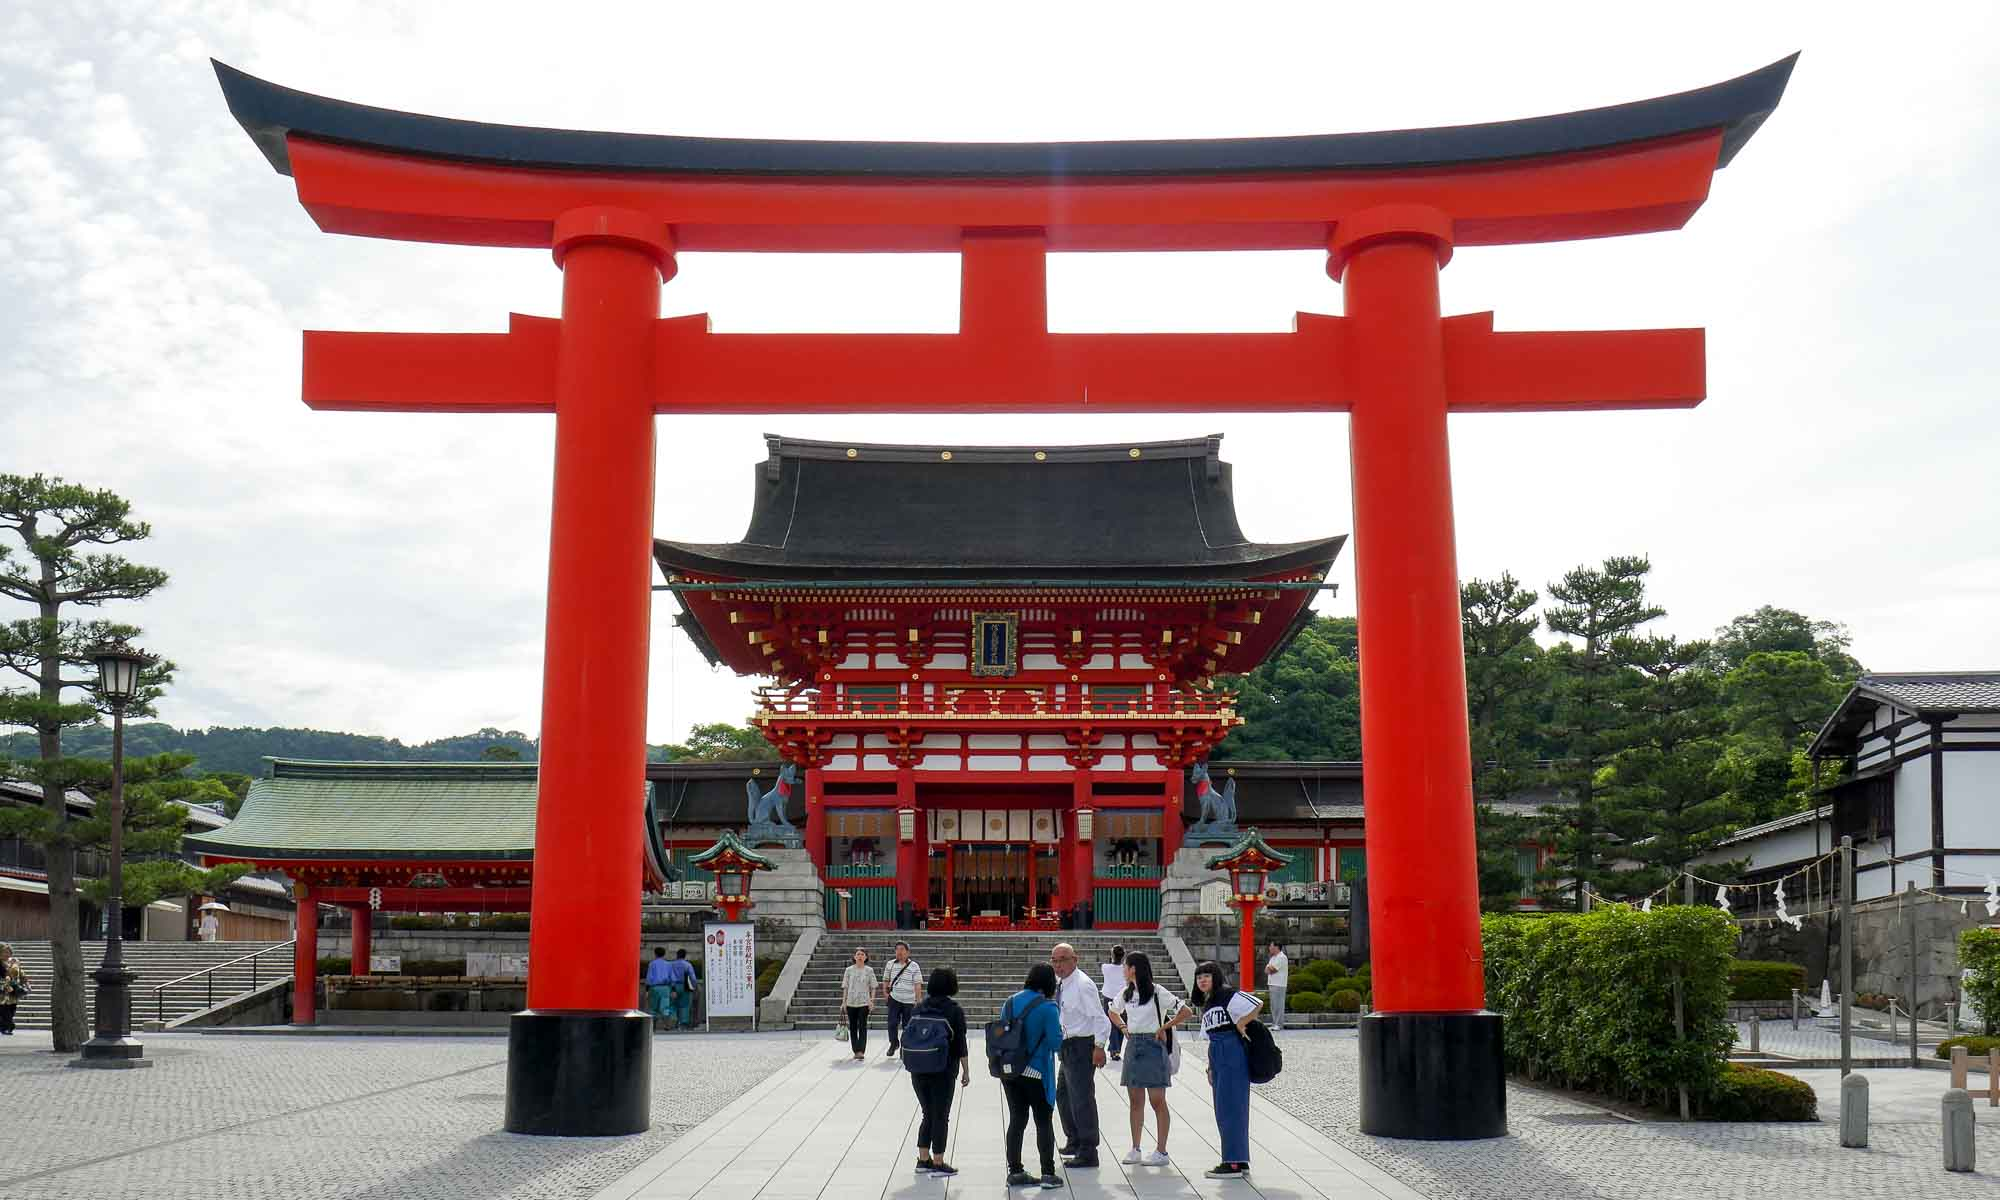 One of the first of many torii